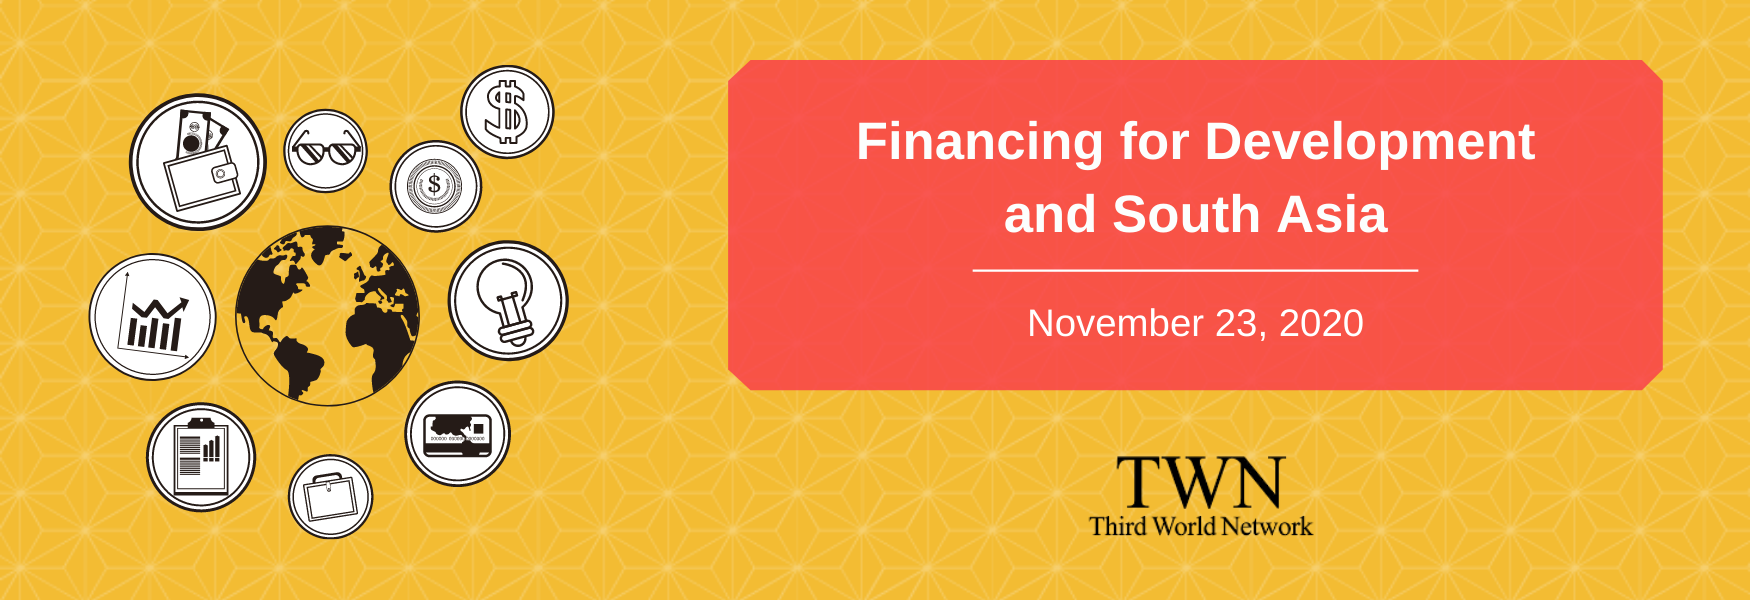 A yellow background with a red box, on which white text reads: Financing for Development and South Asia. November 23, 2020.